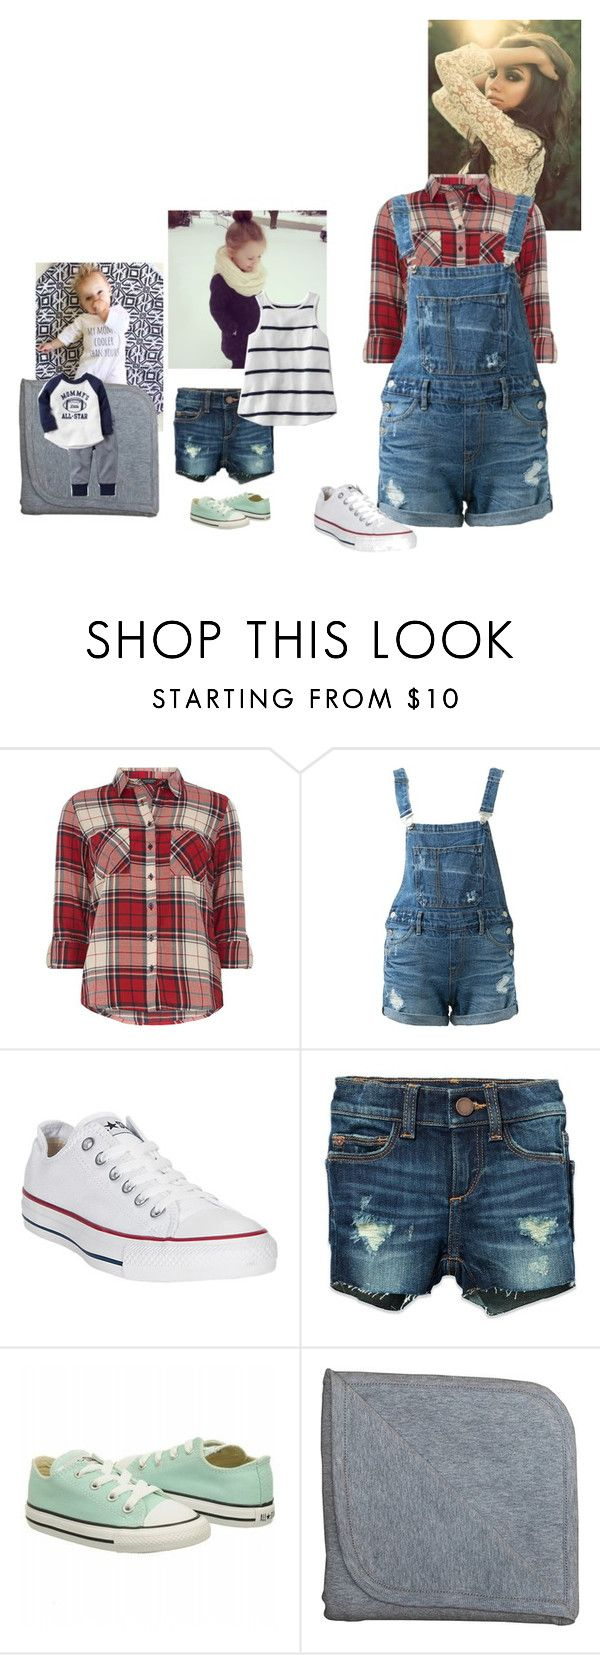 """""""Playing outside // Stella, Ash, Emily"""" by mad-die-hatter ❤ liked on Polyvore featuring Dorothy Perkins, Guild Prime, Graco, Converse, DL1961 Premium Denim and Monica + Andy"""